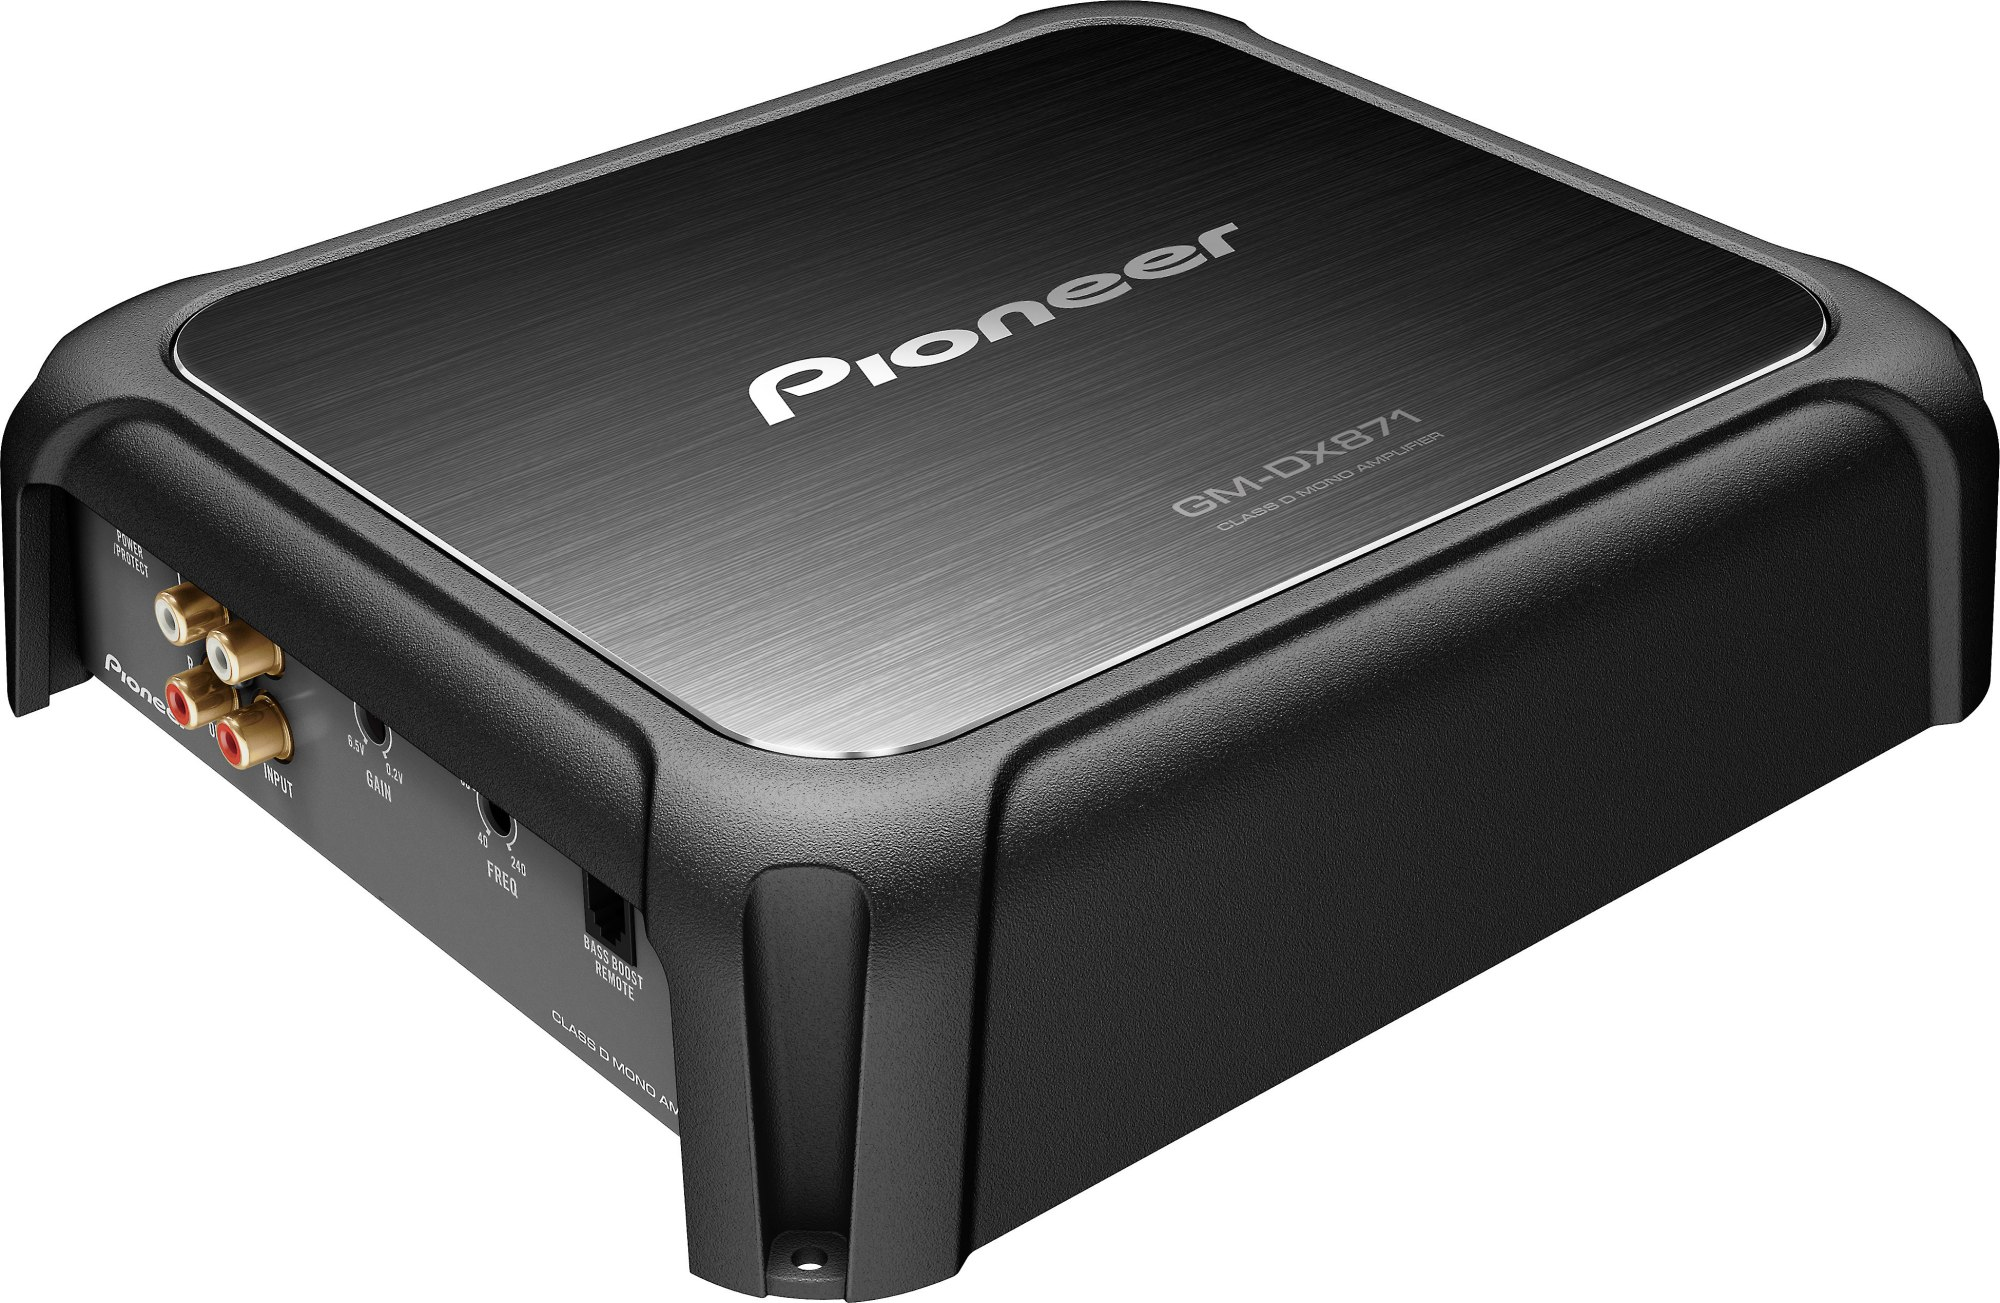 hight resolution of pioneer gm dx871 limited edition mono subwoofer amplifier 800 watts rms x 1 at 1 ohm at crutchfield com